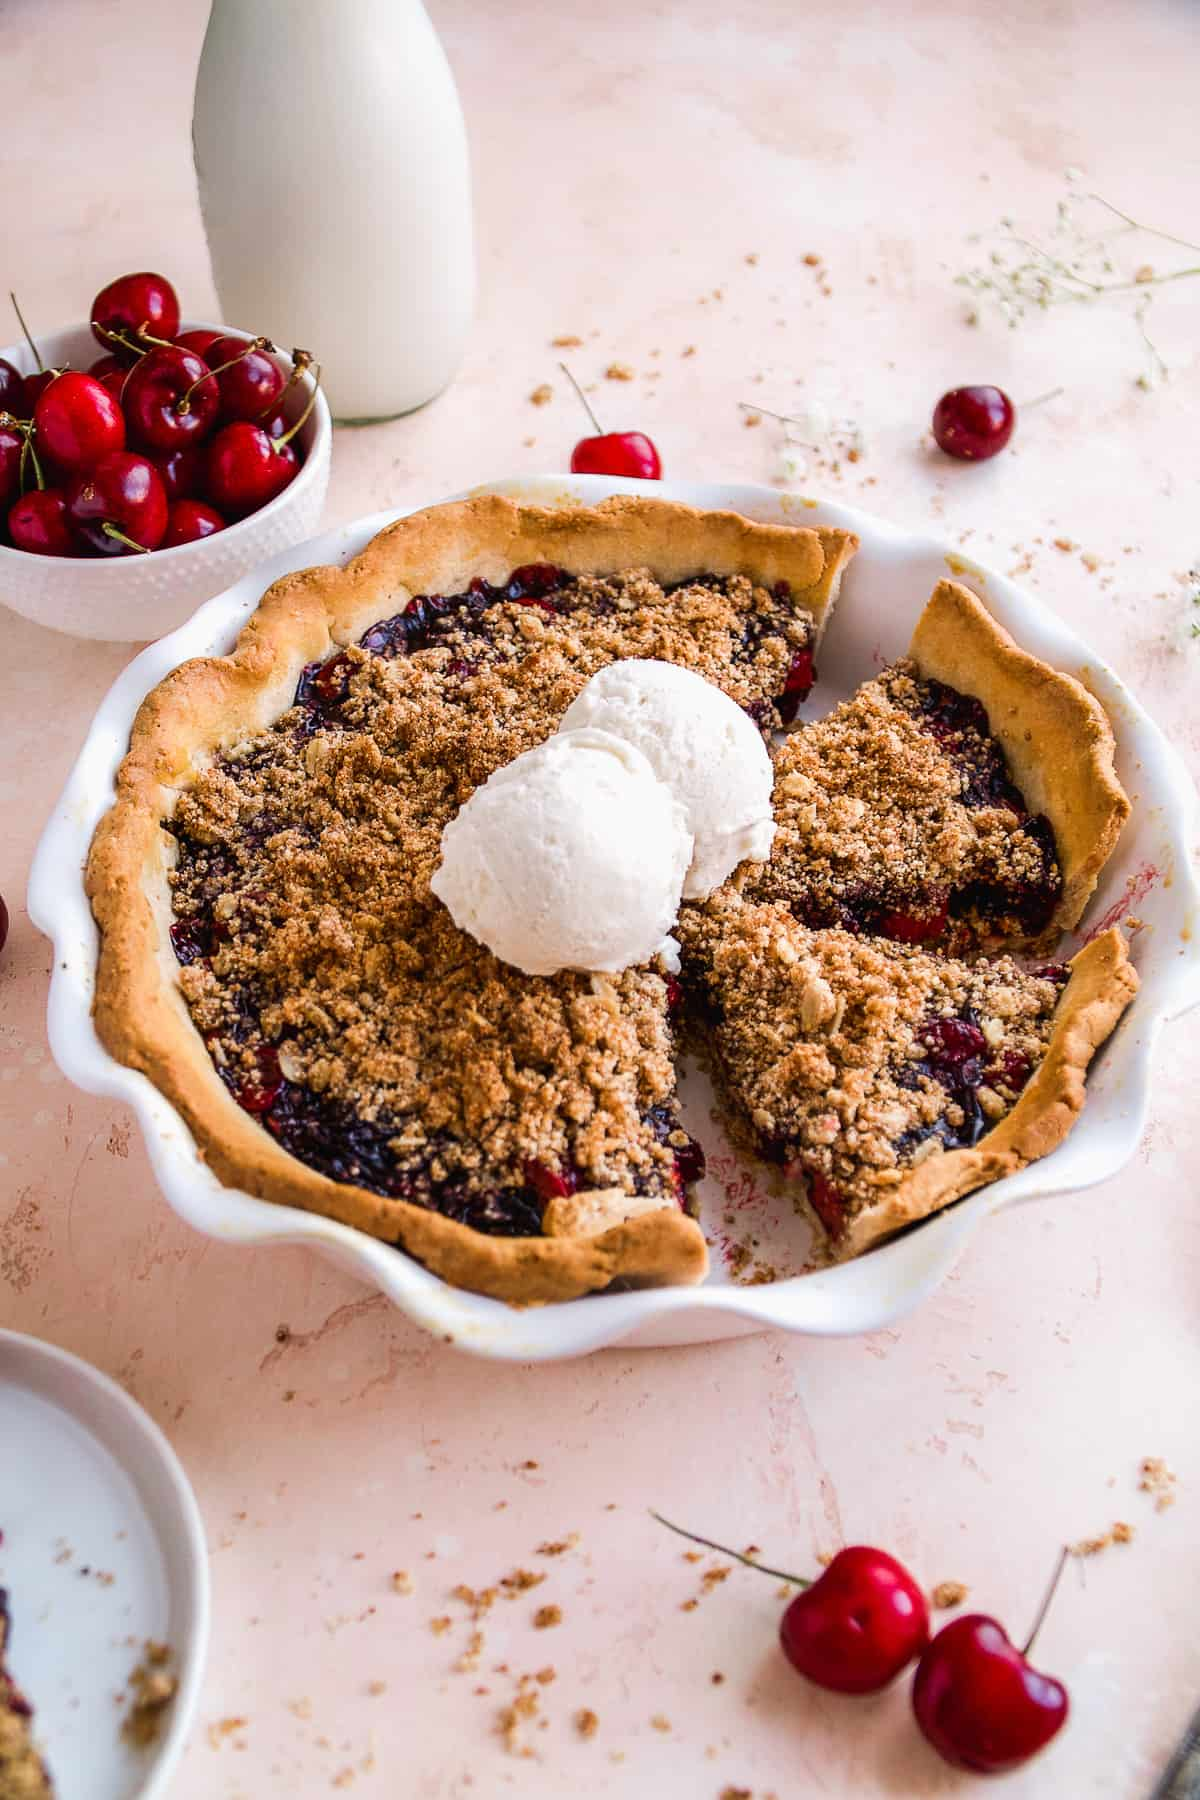 Cherry pie with a gluten free crumble on a pink surface.